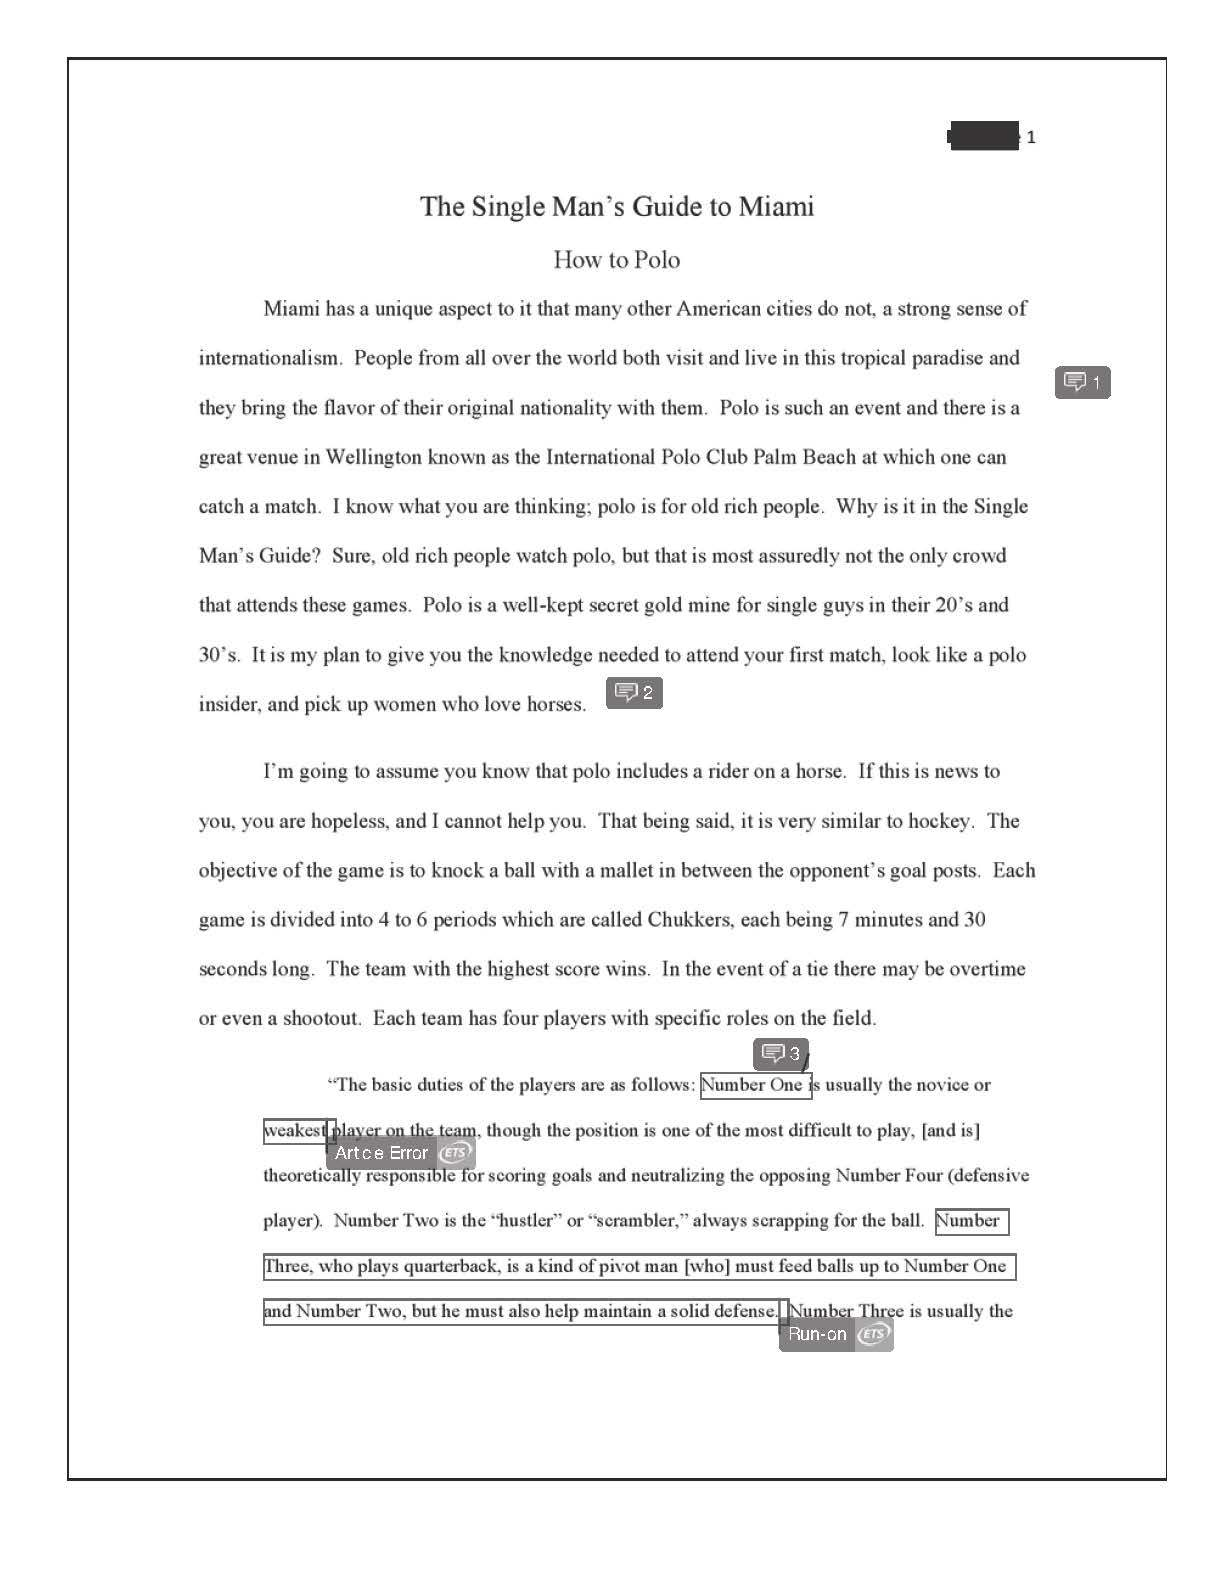 006 Writing An Informative Essay Example Of About Education Examples Essays Utopia Instruction Final How To Polo Redacted P Quiz Sensational The Immigrant Experience Ppt Introduction Full